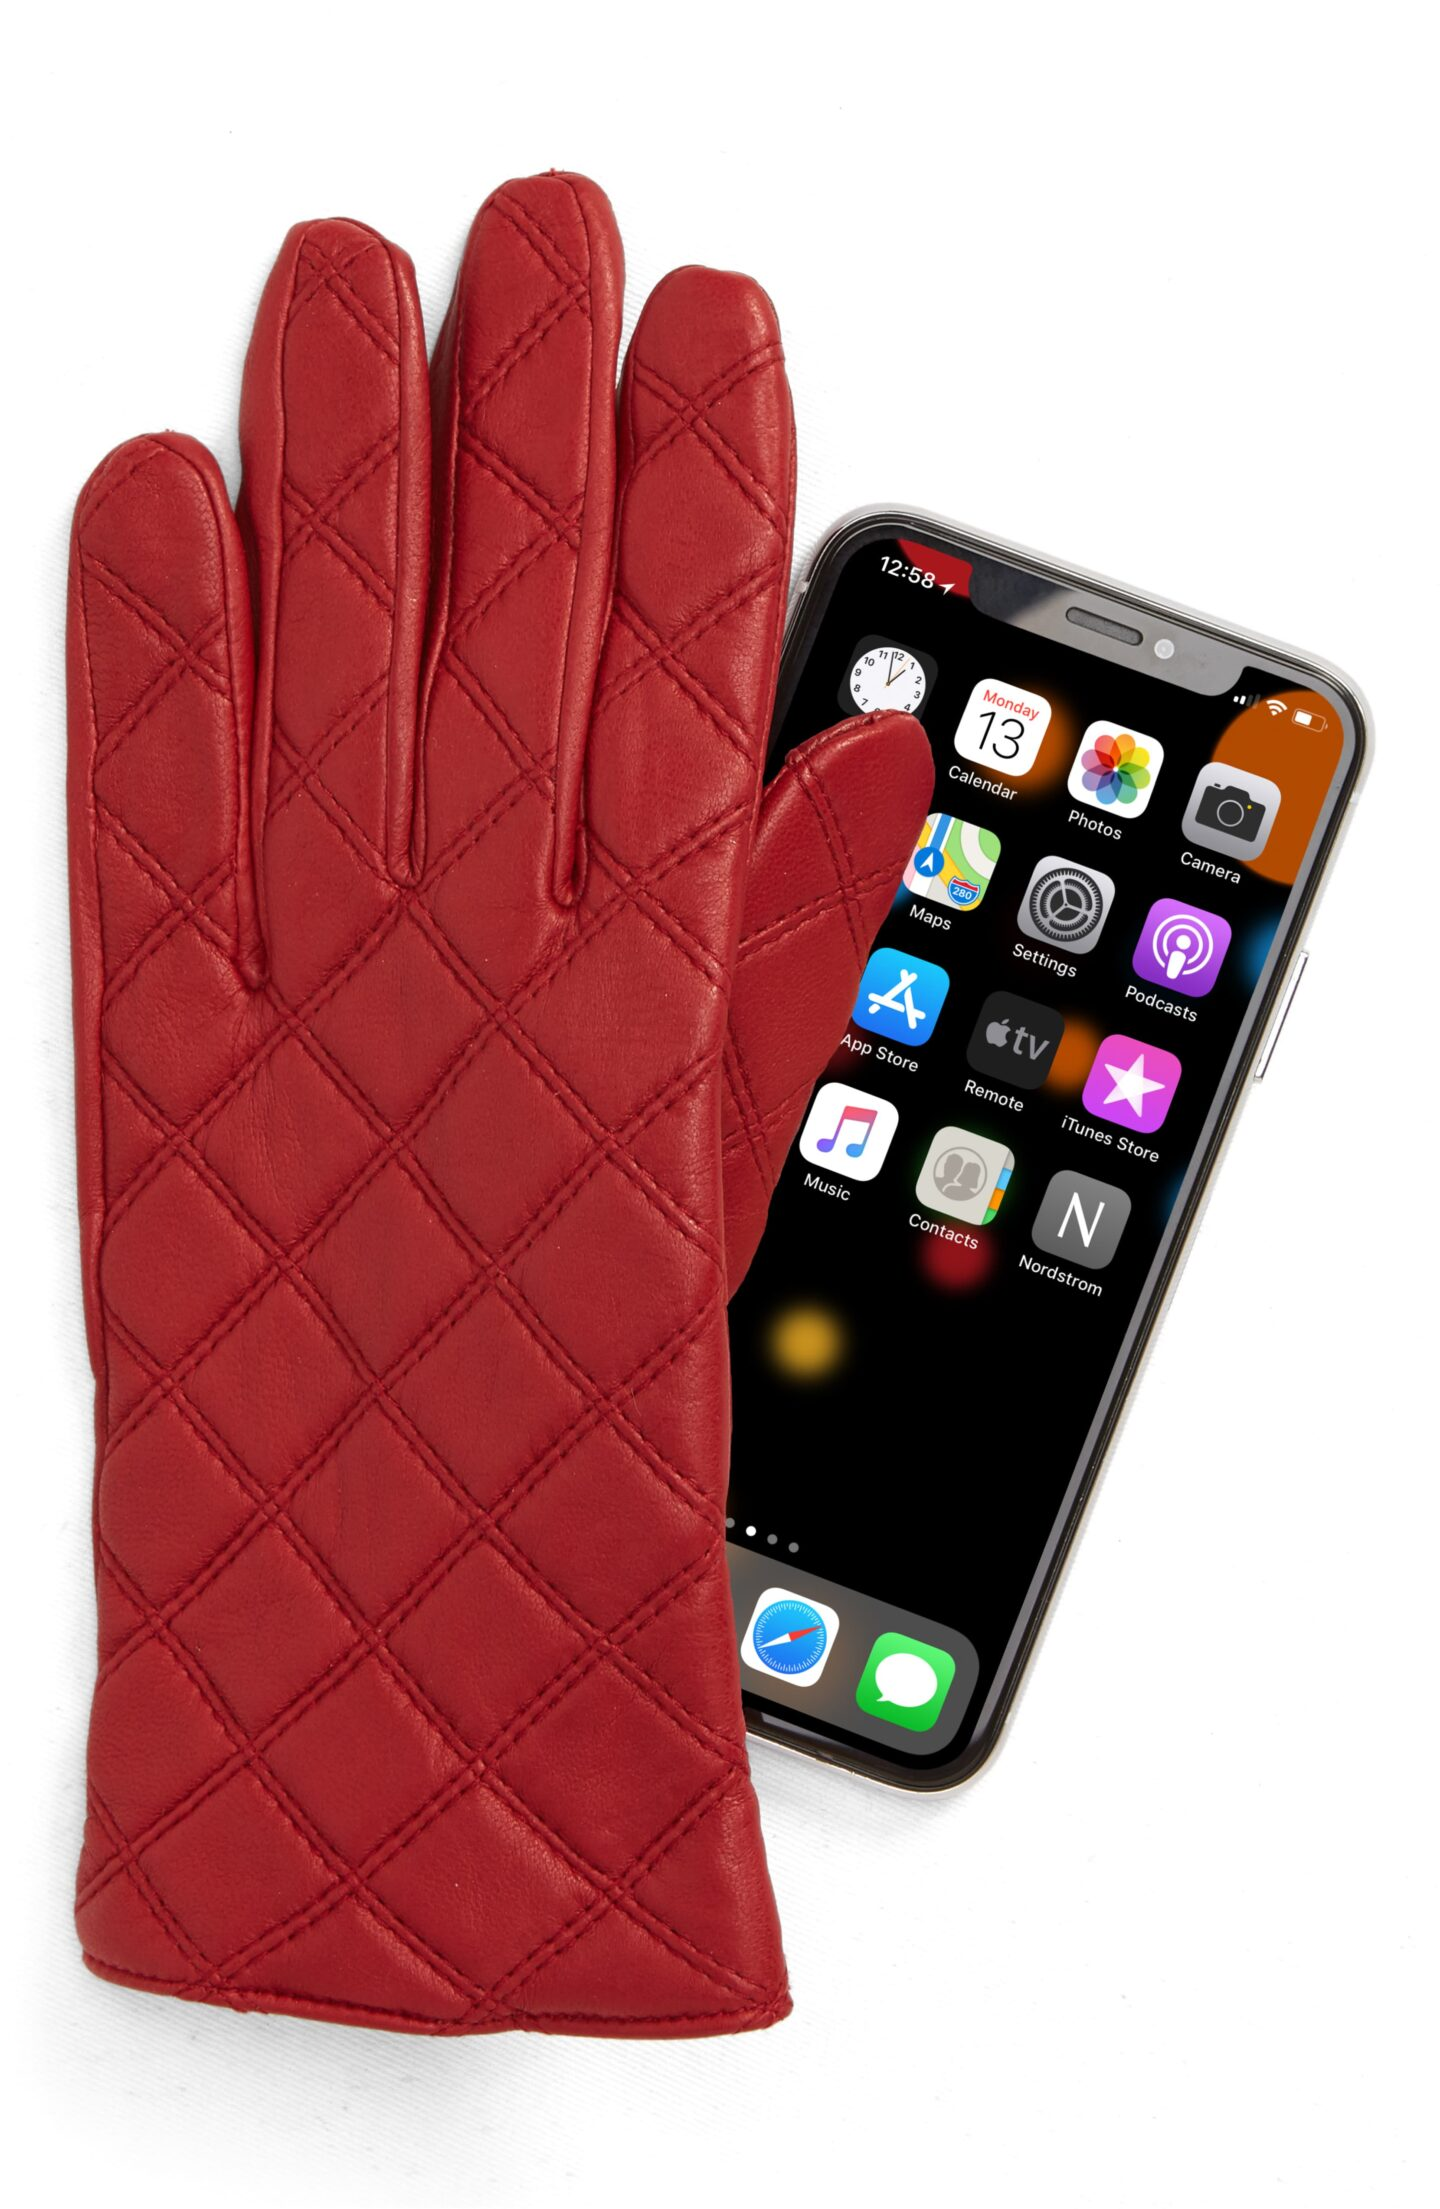 quilted red leather tech gloves